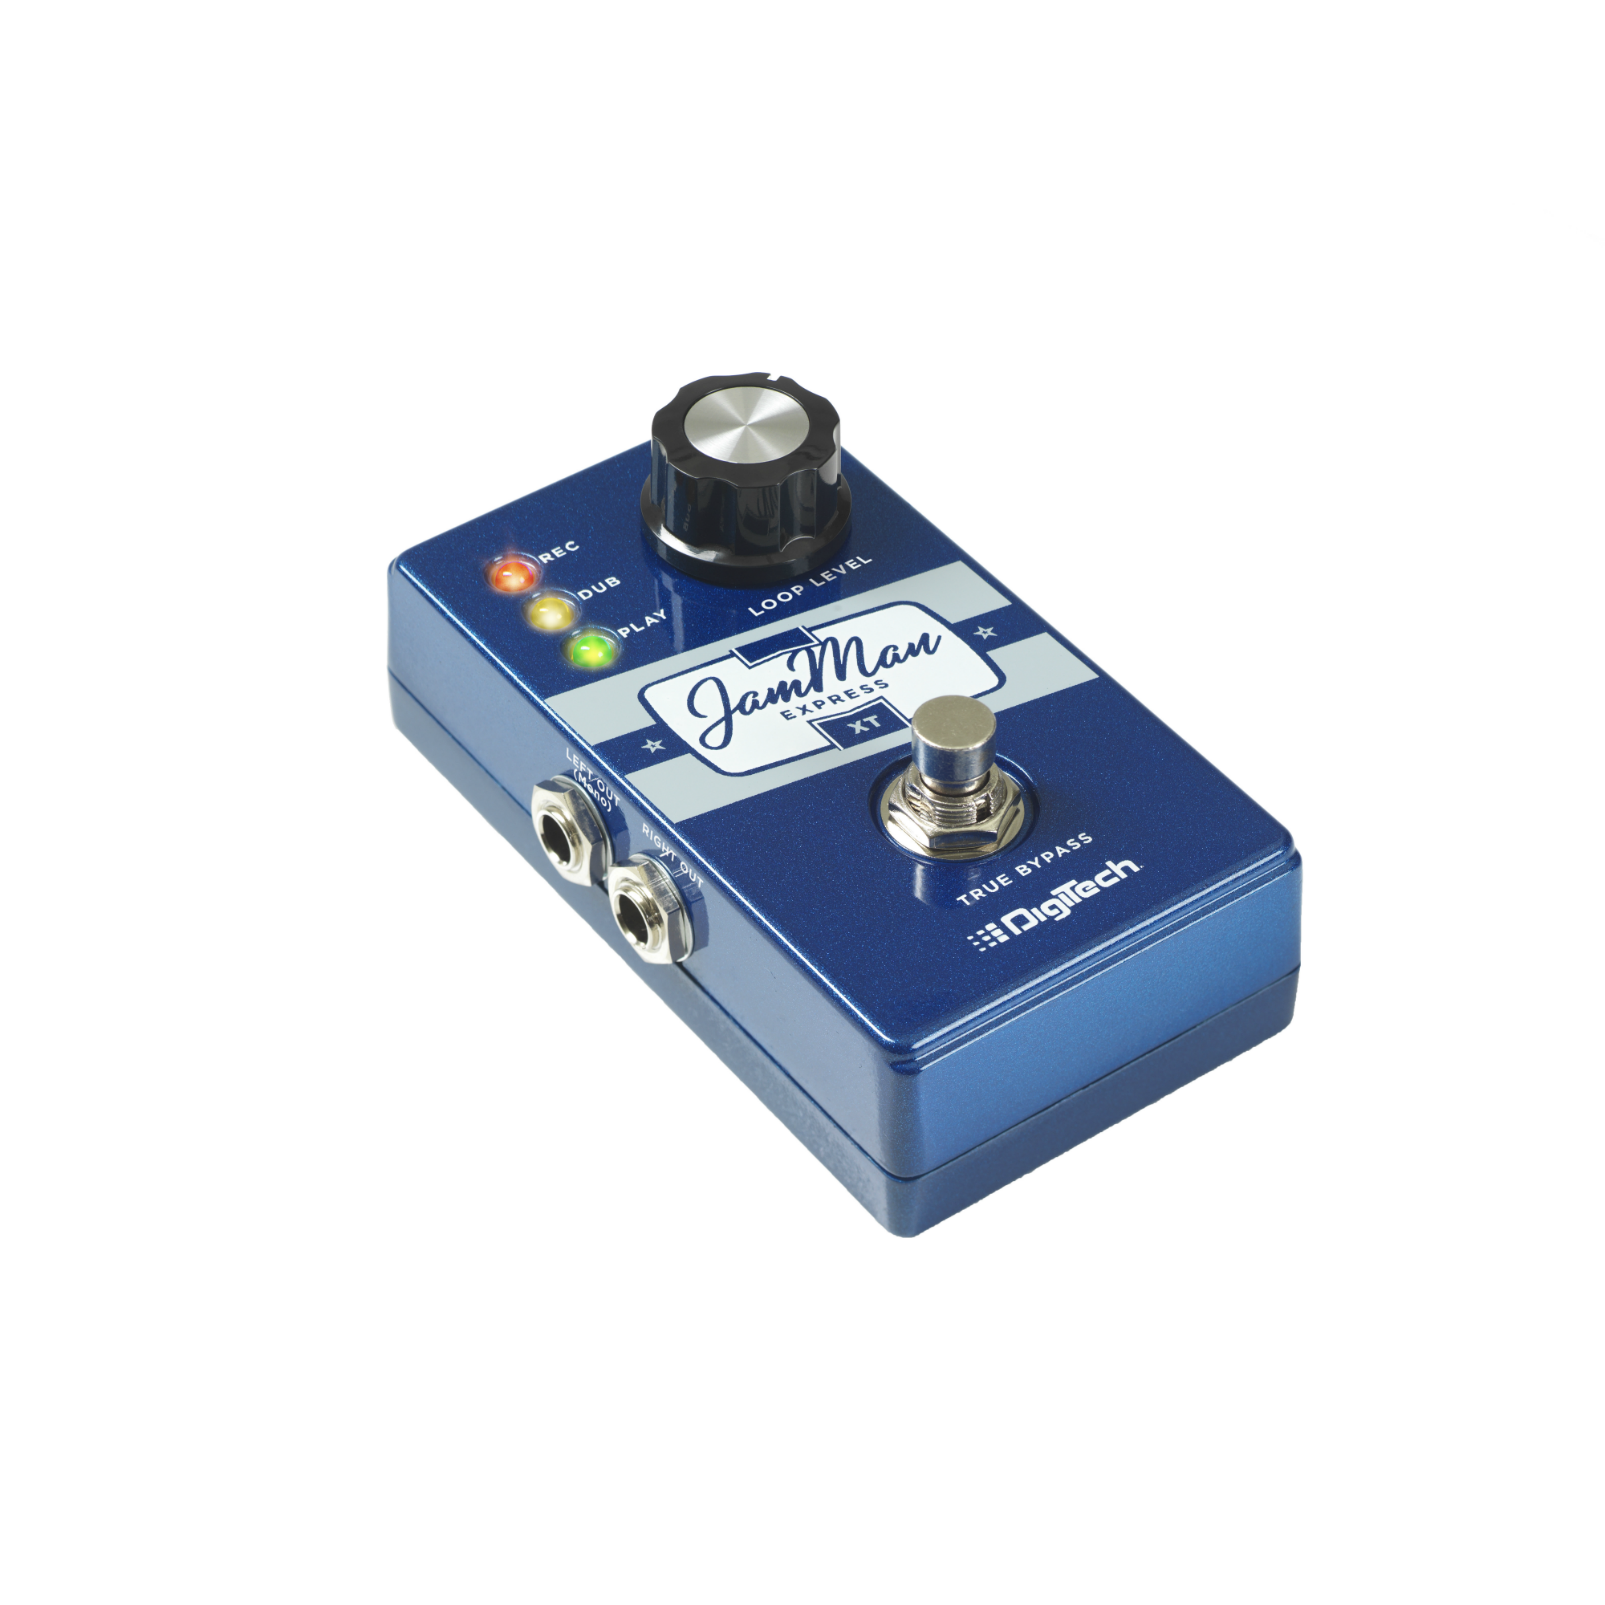 JamMan Express XT - Blue - Compact Stereo Looper with JamSync - Detailshot 1